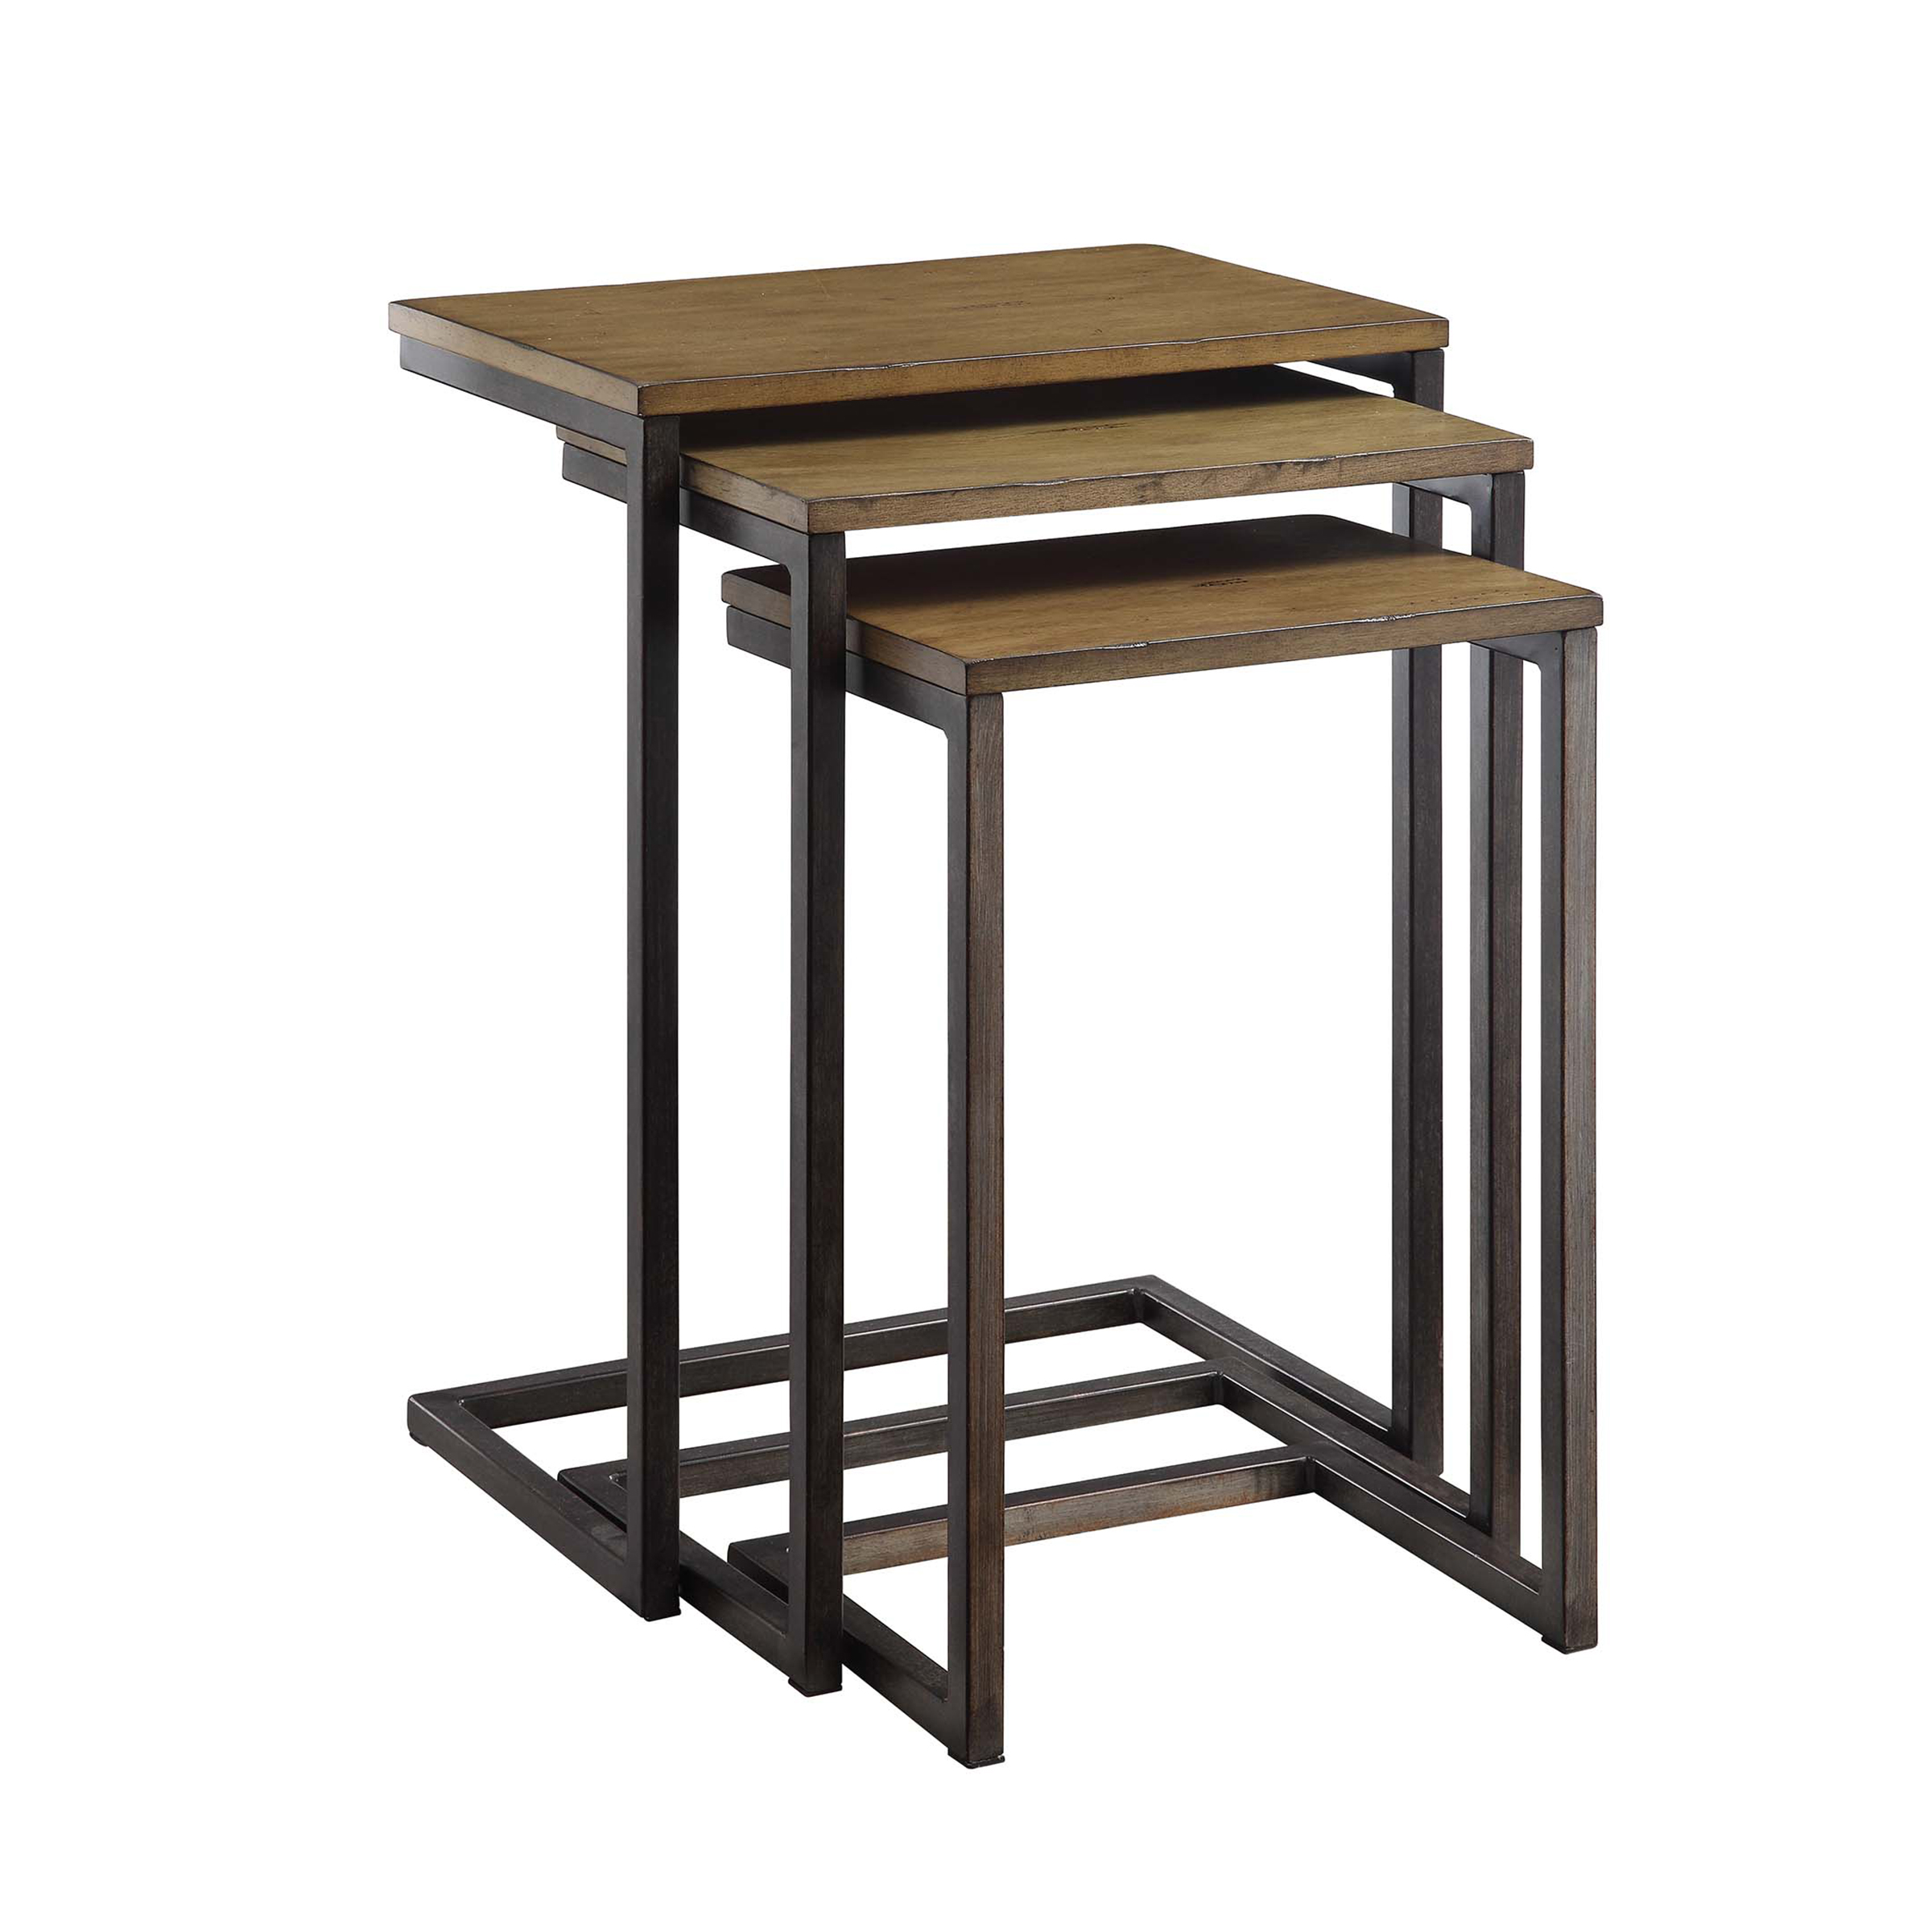 Emmitt Nesting Table Set, Harvest Oak/Aged Iron